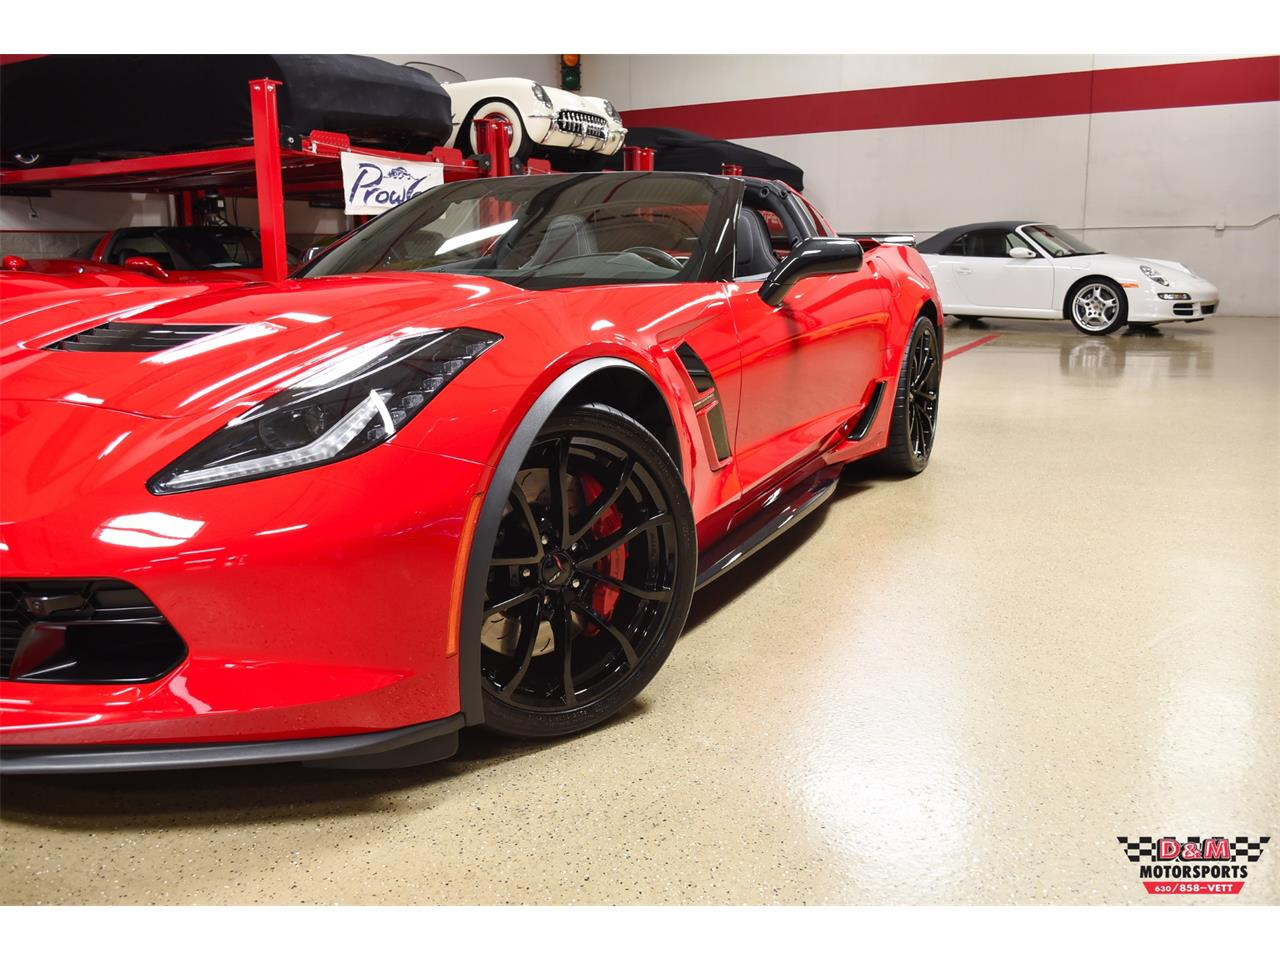 Large Picture of '18 Chevrolet Corvette - $61,995.00 - PWM3